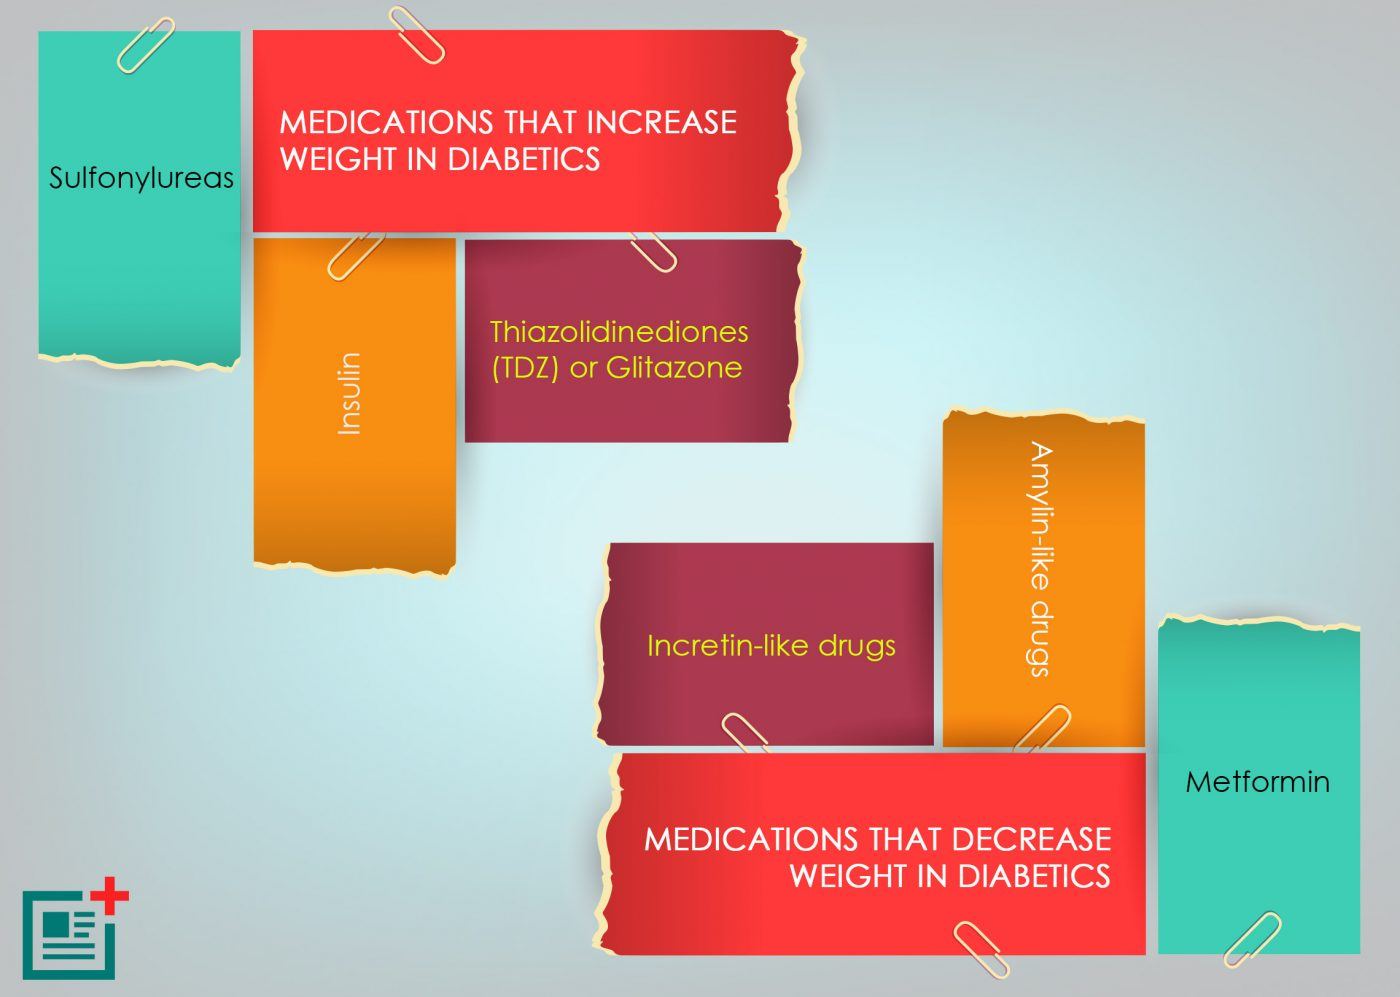 Weight Loss In Diabetes Medications That Increase And Decrease